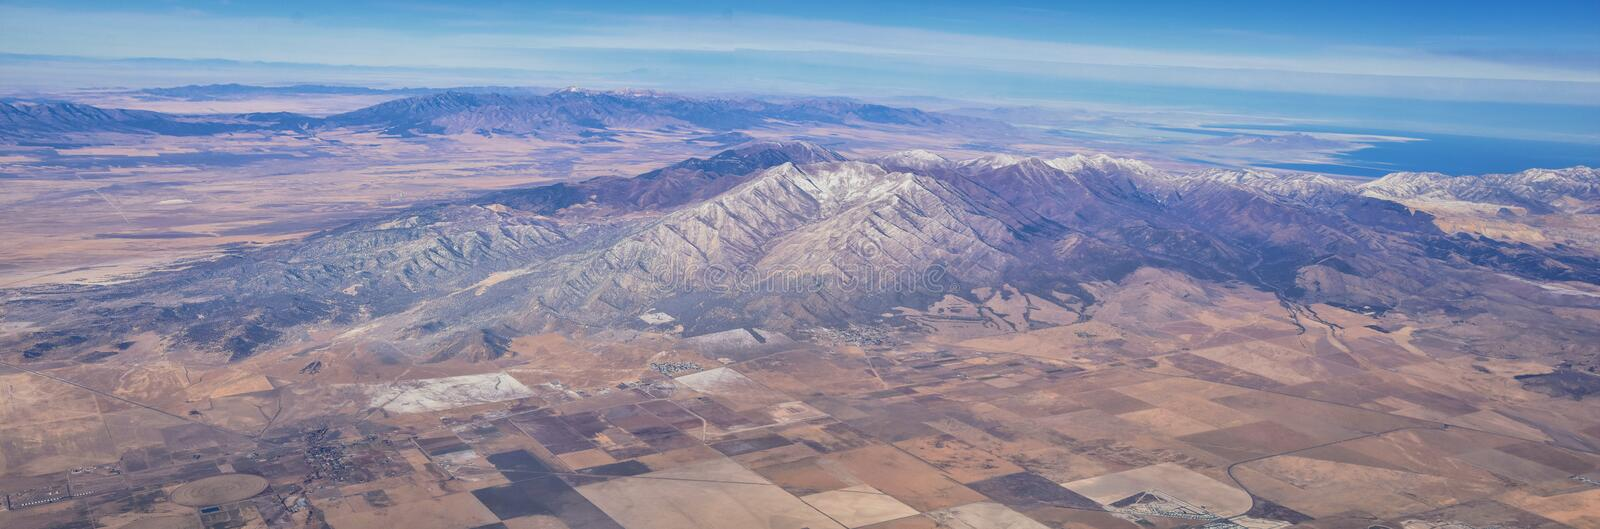 Rocky Mountains, Oquirrh range aerial views, Wasatch Front Rock from airplane. South Jordan, West Valley, Magna and Herriman, by t. He Great Salt Lake Utah stock photos